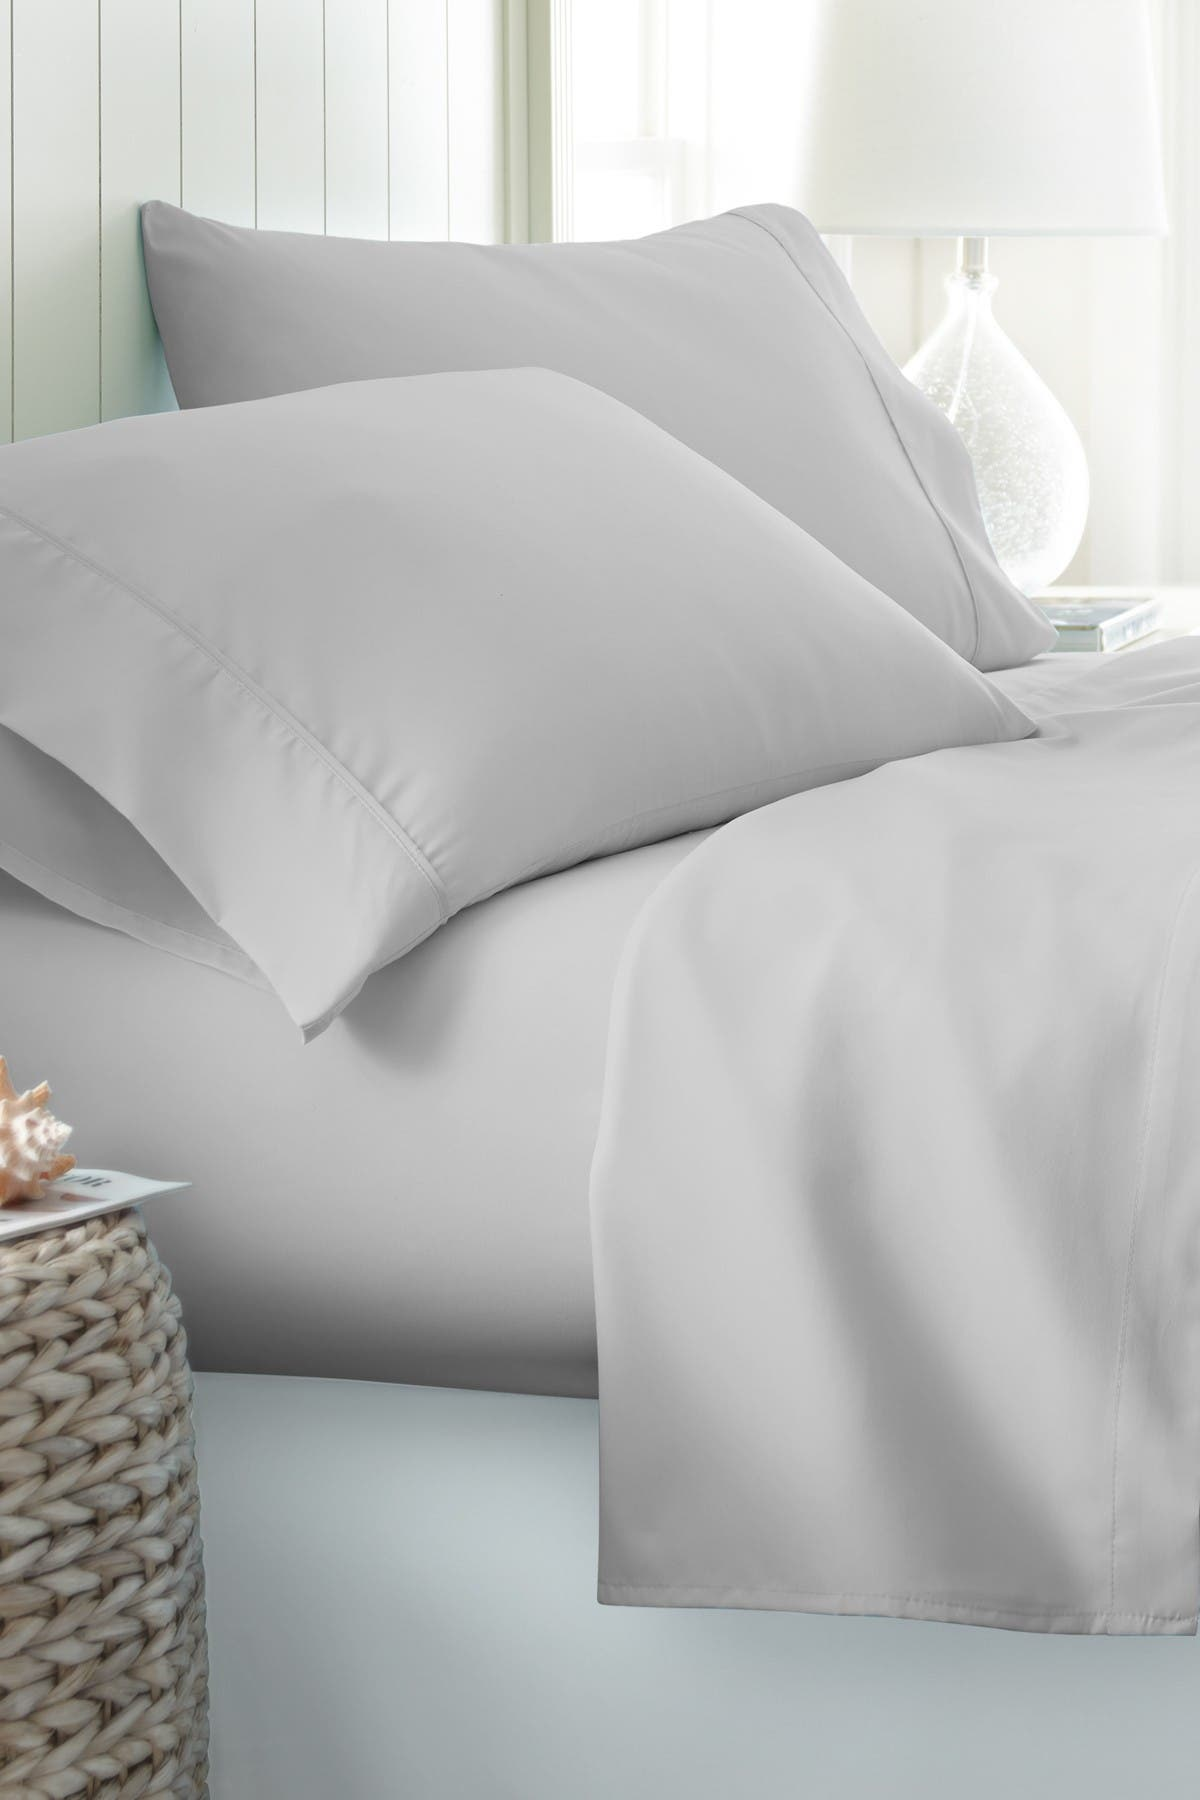 Image of IENJOY HOME Hotel Collection Premium Ultra Soft 4-Piece King Bed Sheet Set - Light Gray